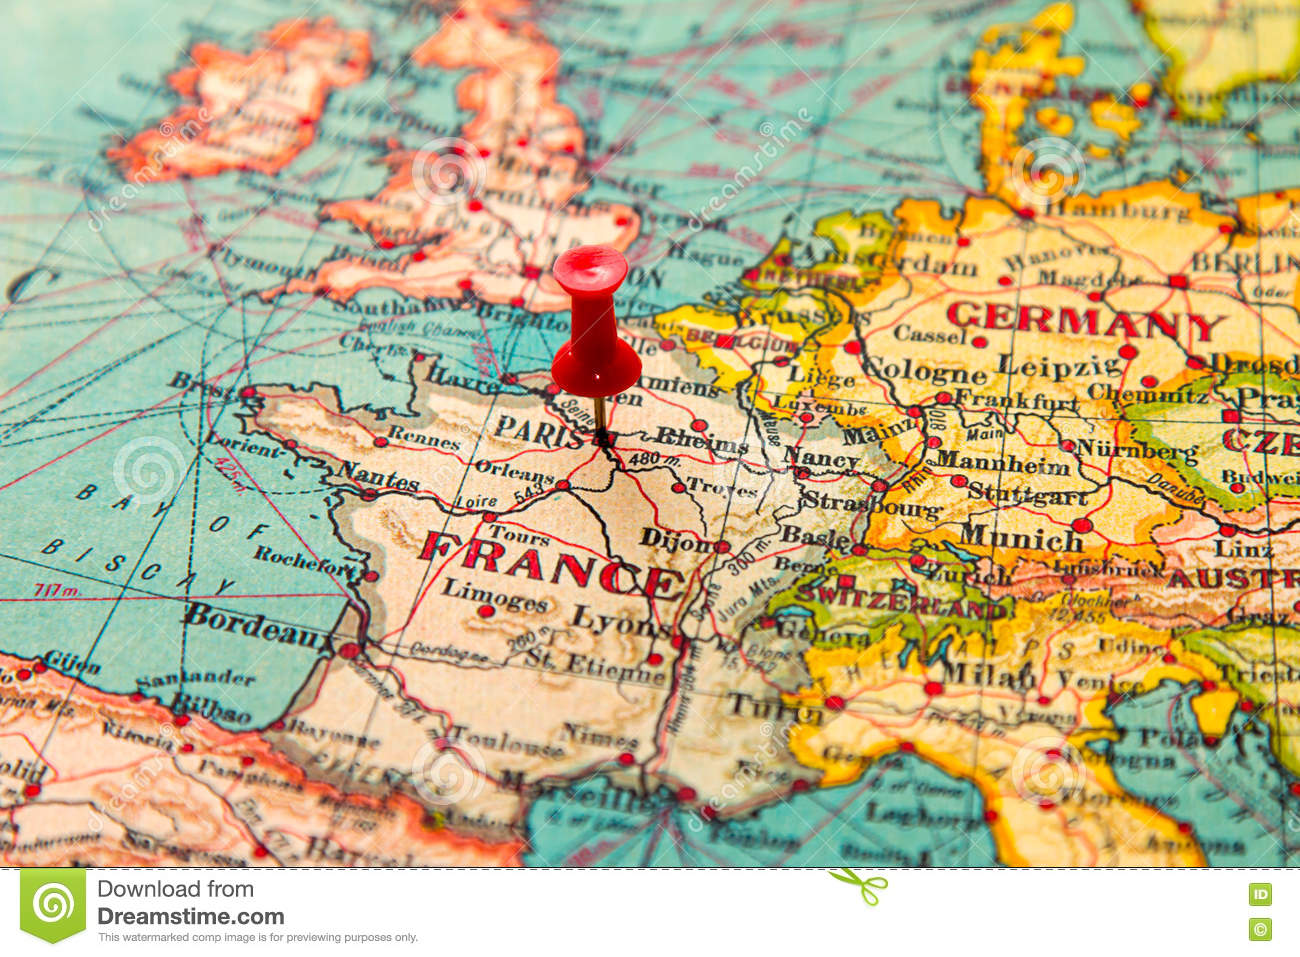 Map Of Europe Without France.Paris France Pinned On Vintage Map Of Europe Stock Photo Image Of